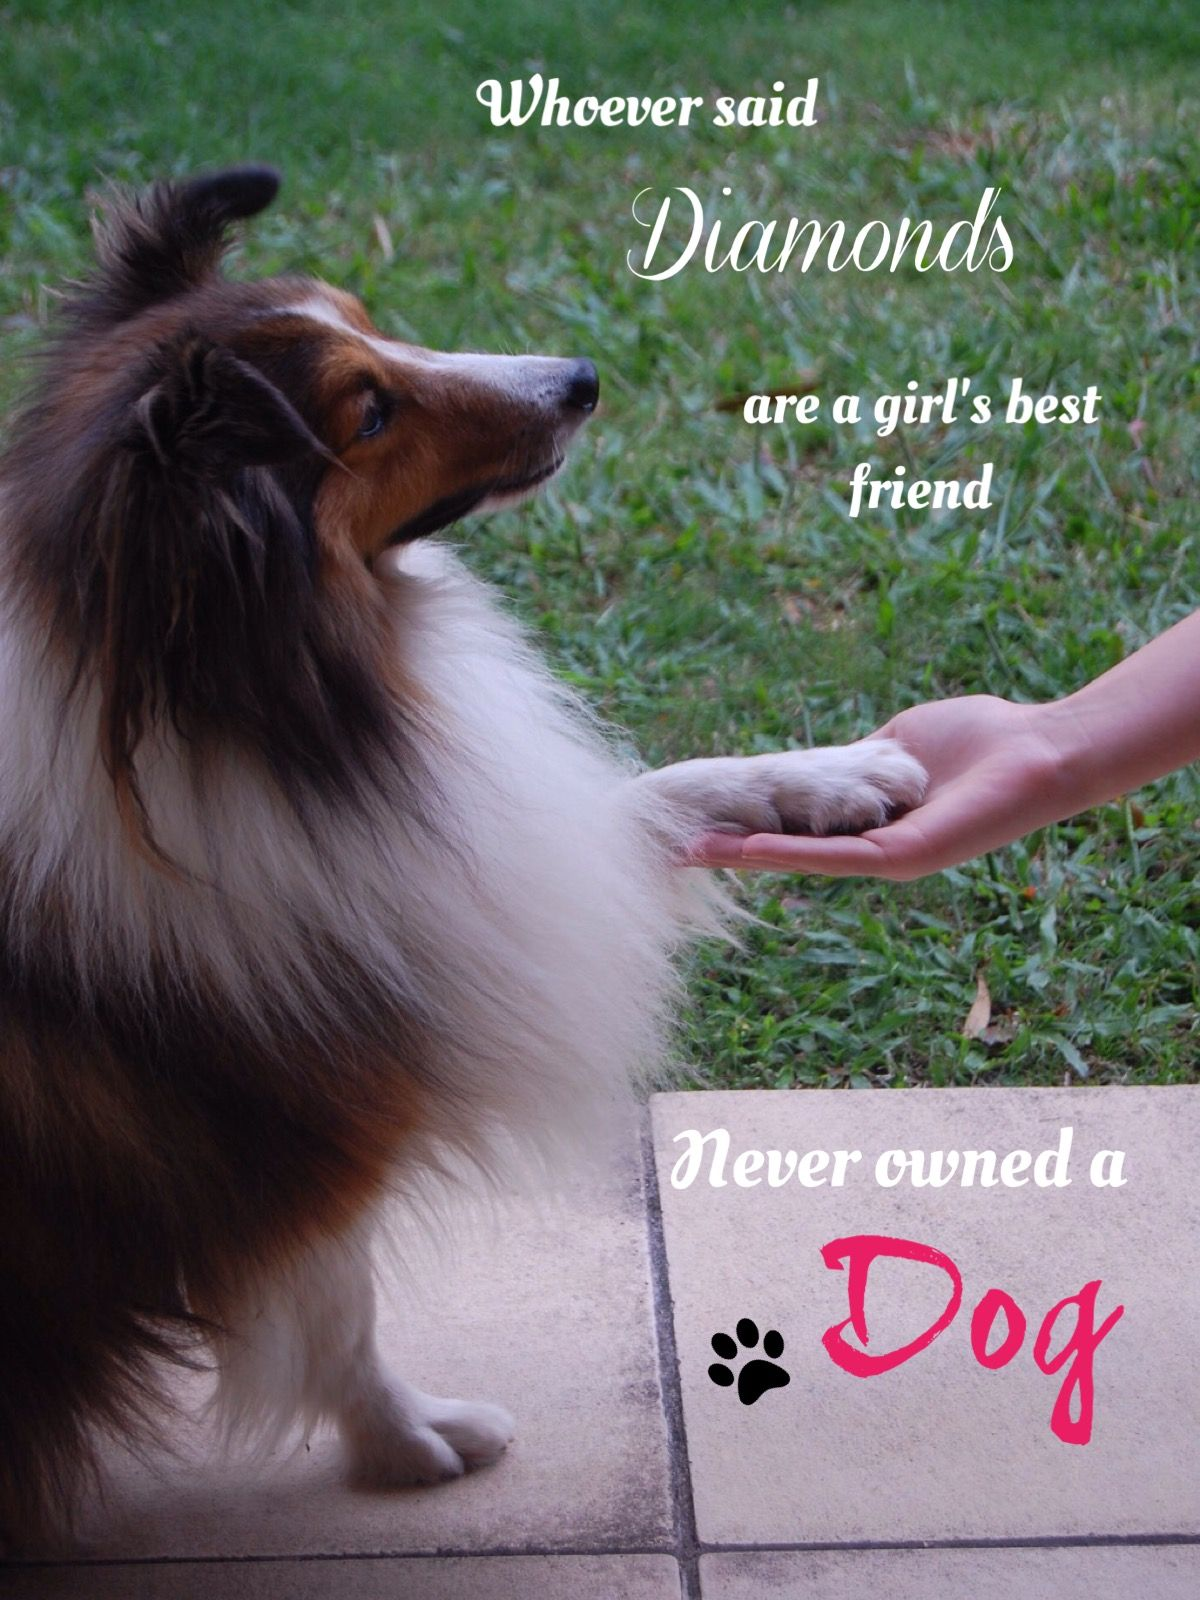 This Quote Is So True No Diamond Could Ever Replace The Bond